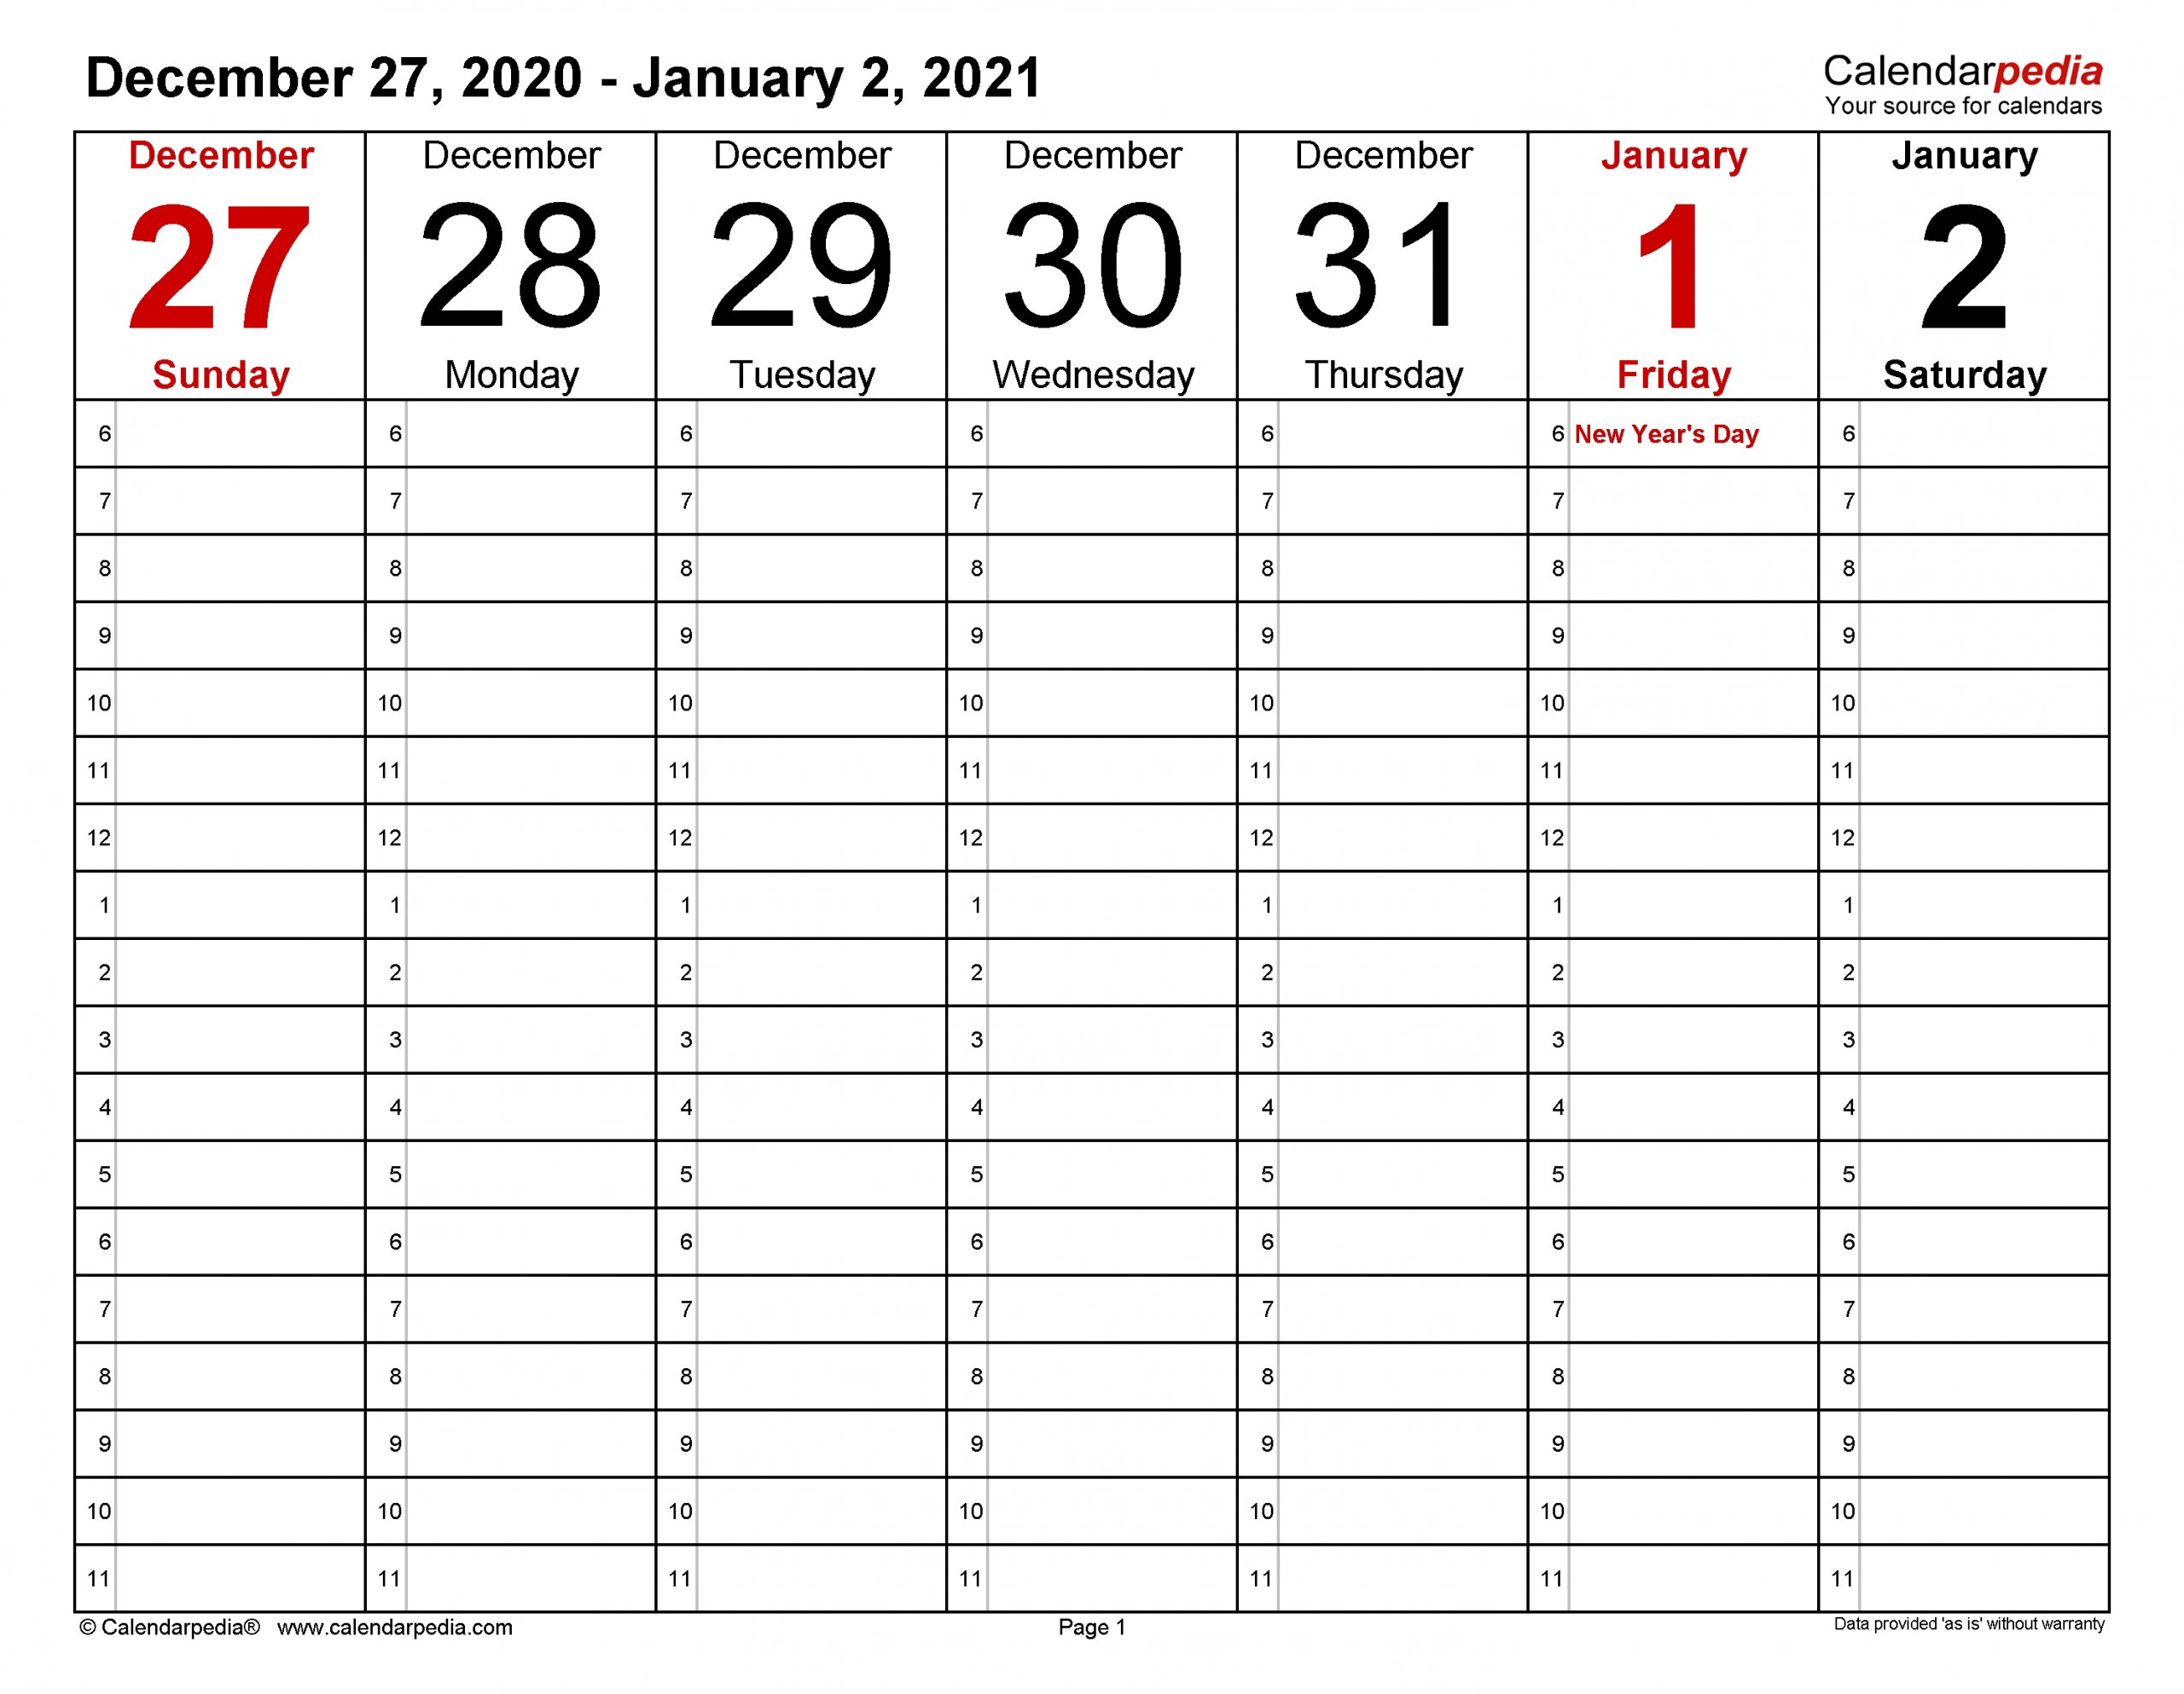 Weekly Calendars 2021 For Excel - 12 Free Printable Templates